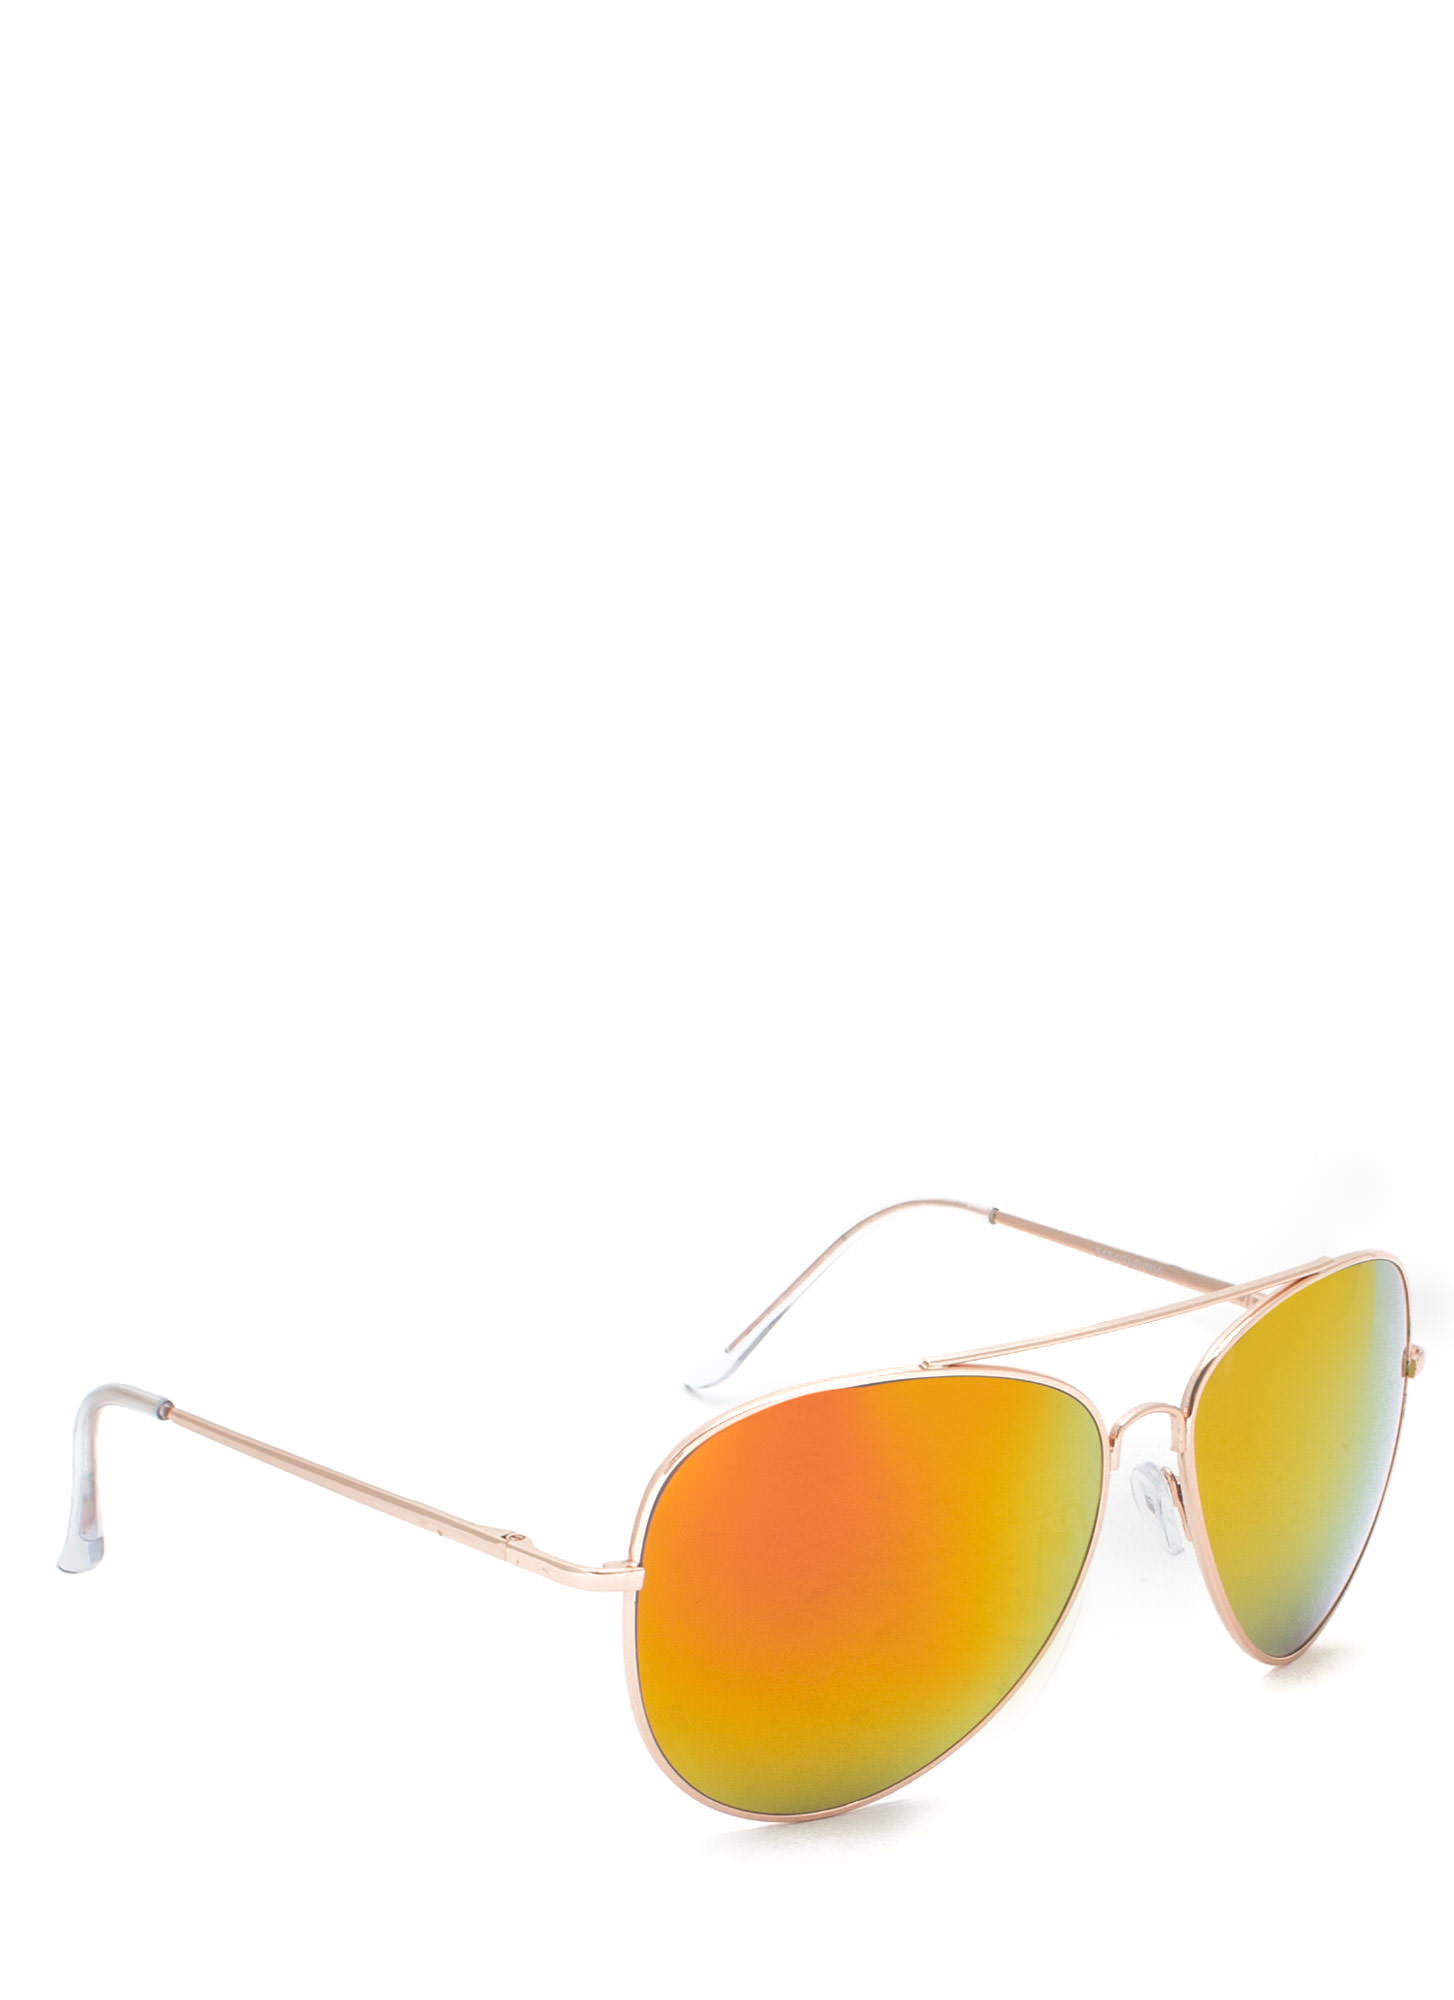 De Colored Sunglasses ORANGEGLD